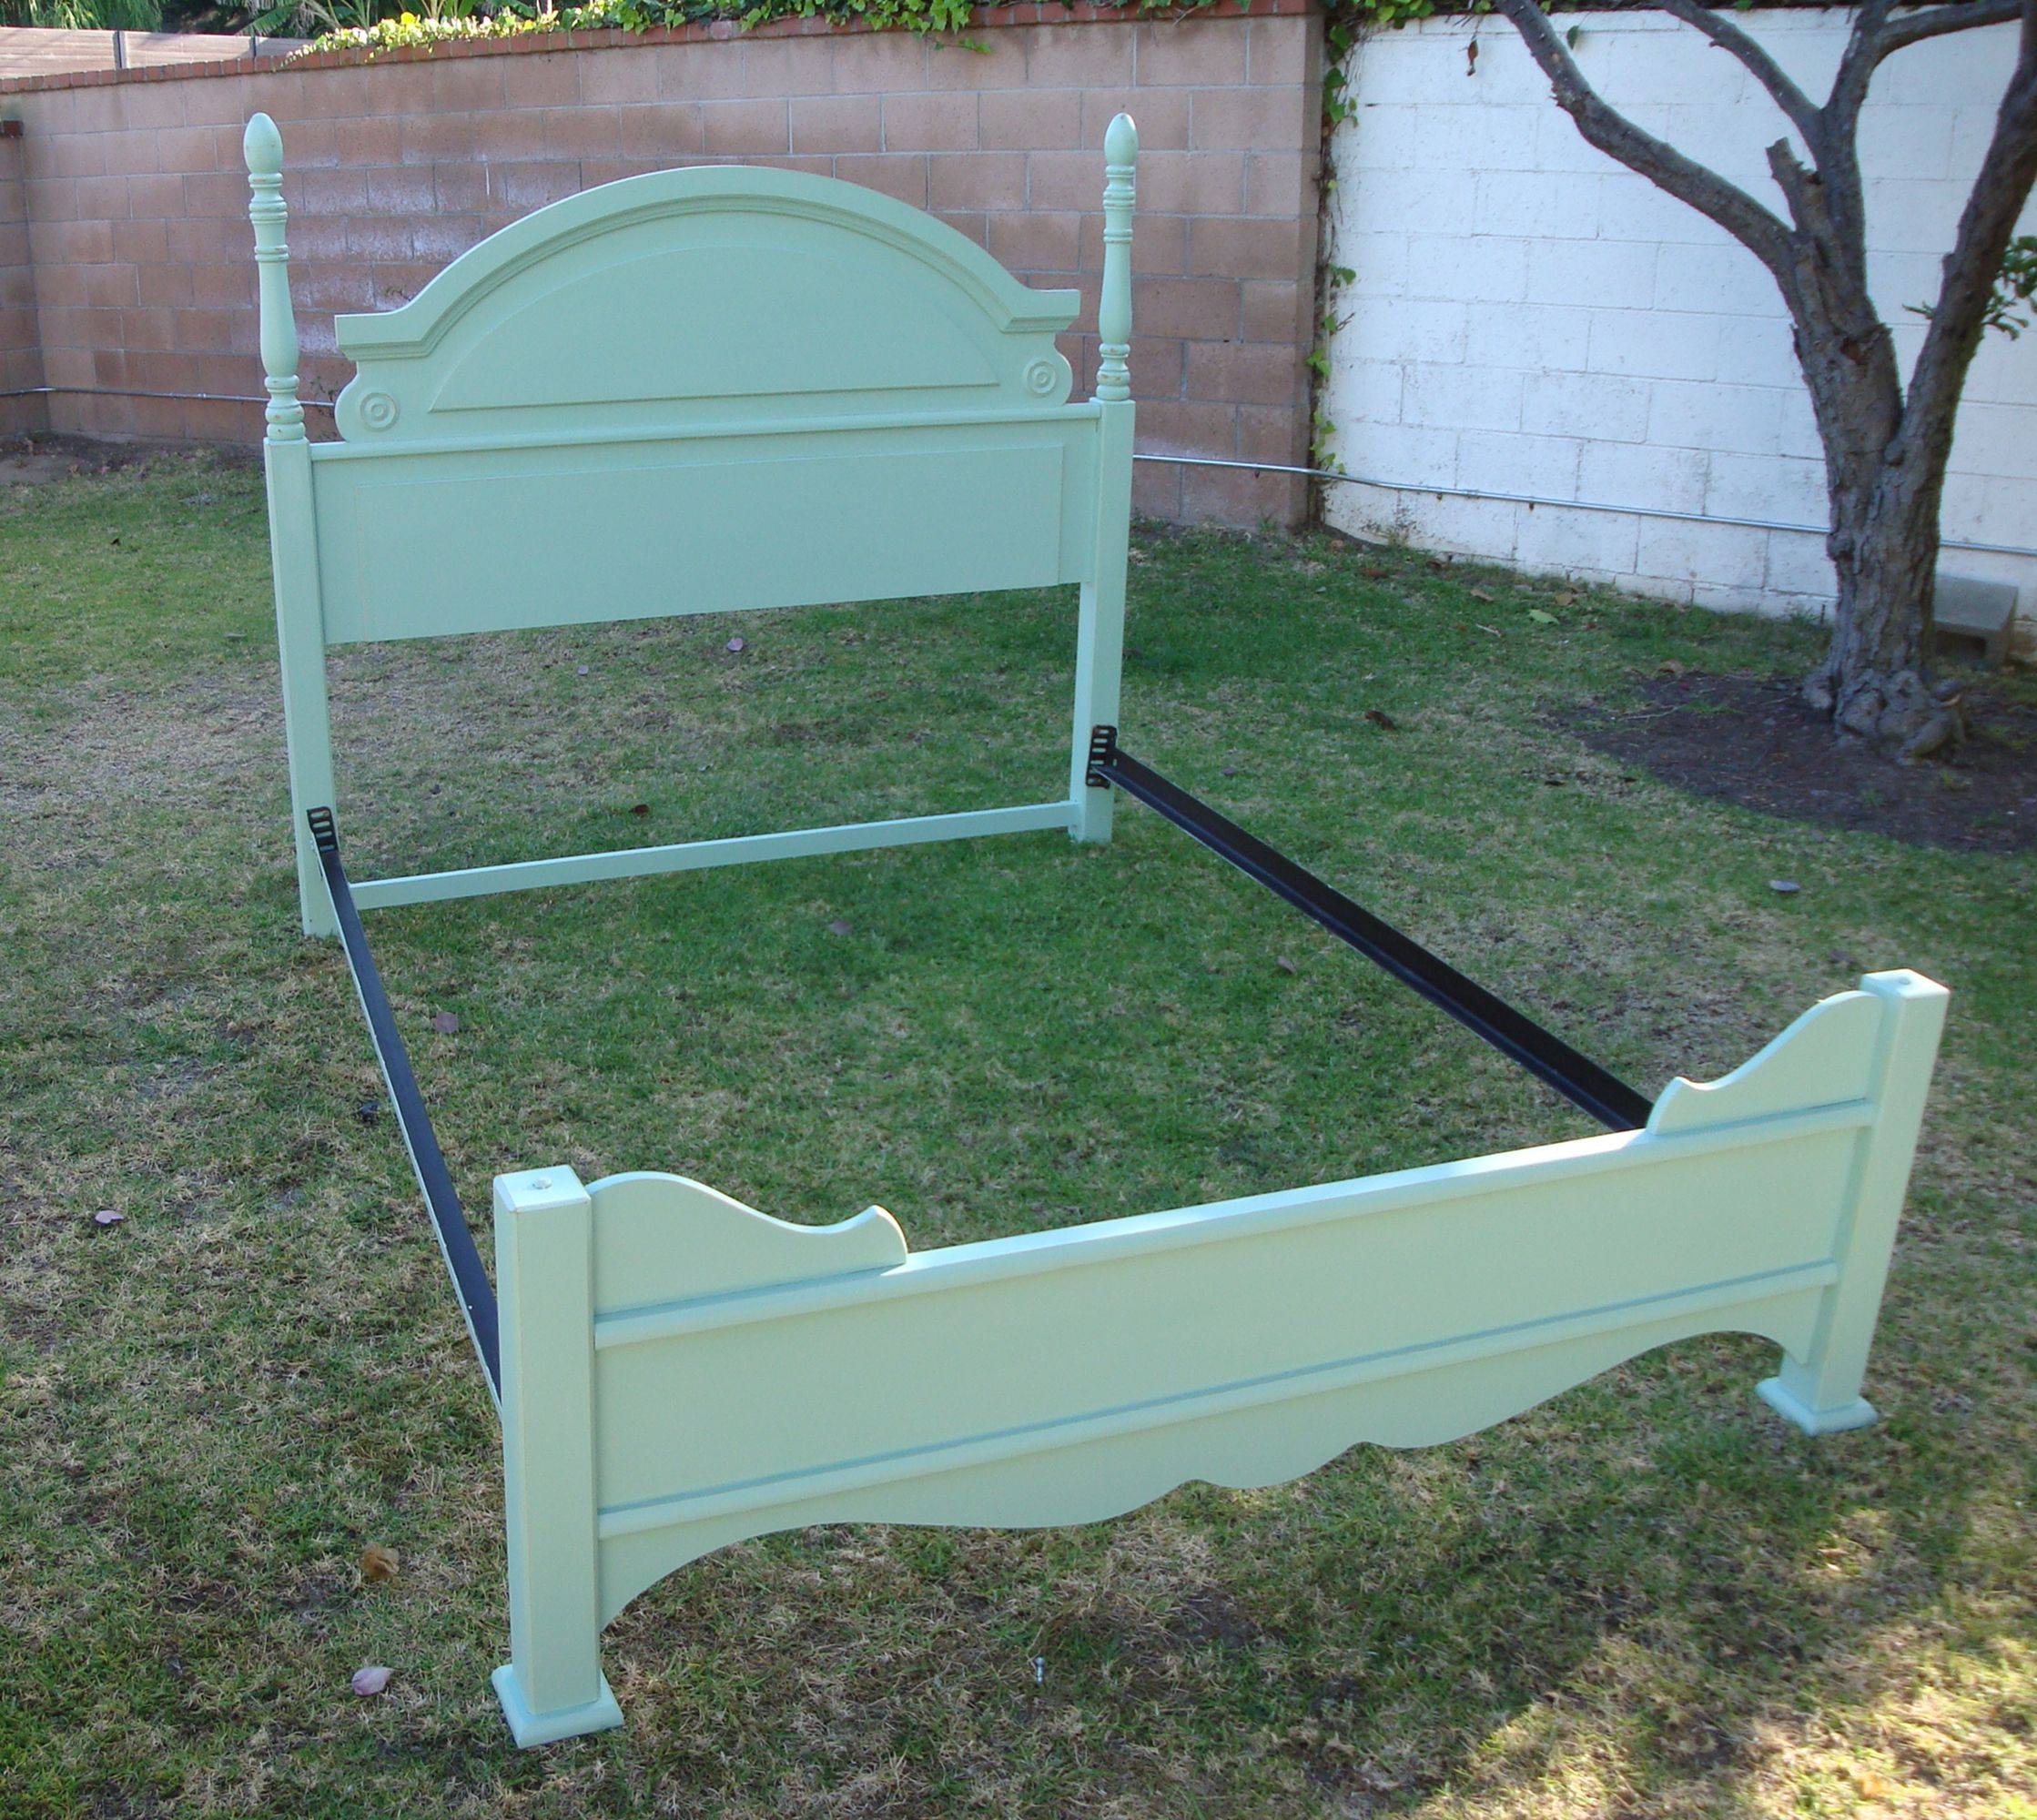 SHABBY CHIC FRENCH PROVINCIAL QUEEN BED FRAME IN MINT GREEN